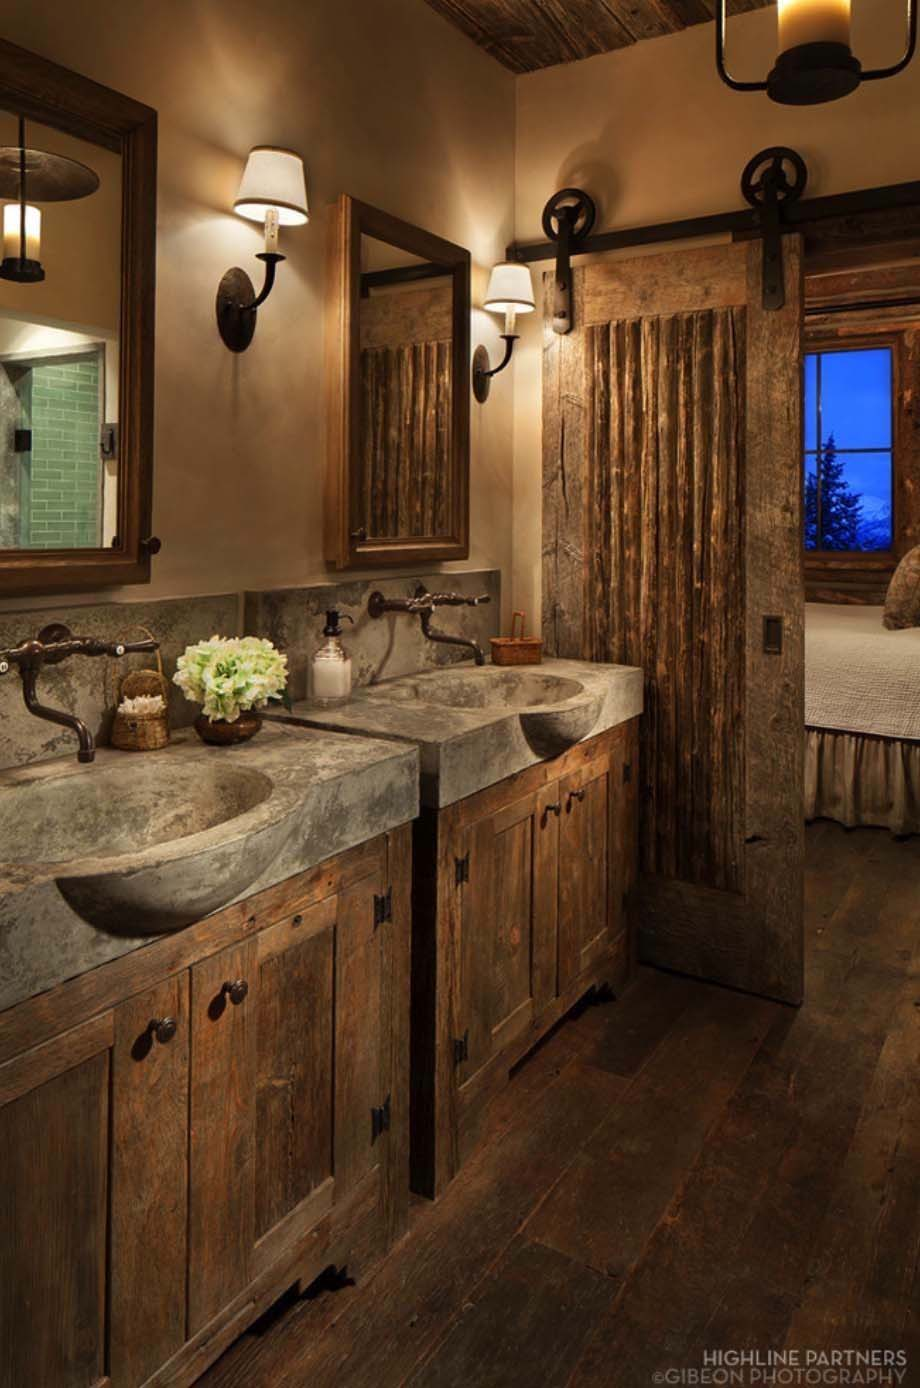 17 inspiring rustic bathroom decor ideas for cozy home for House bathroom ideas